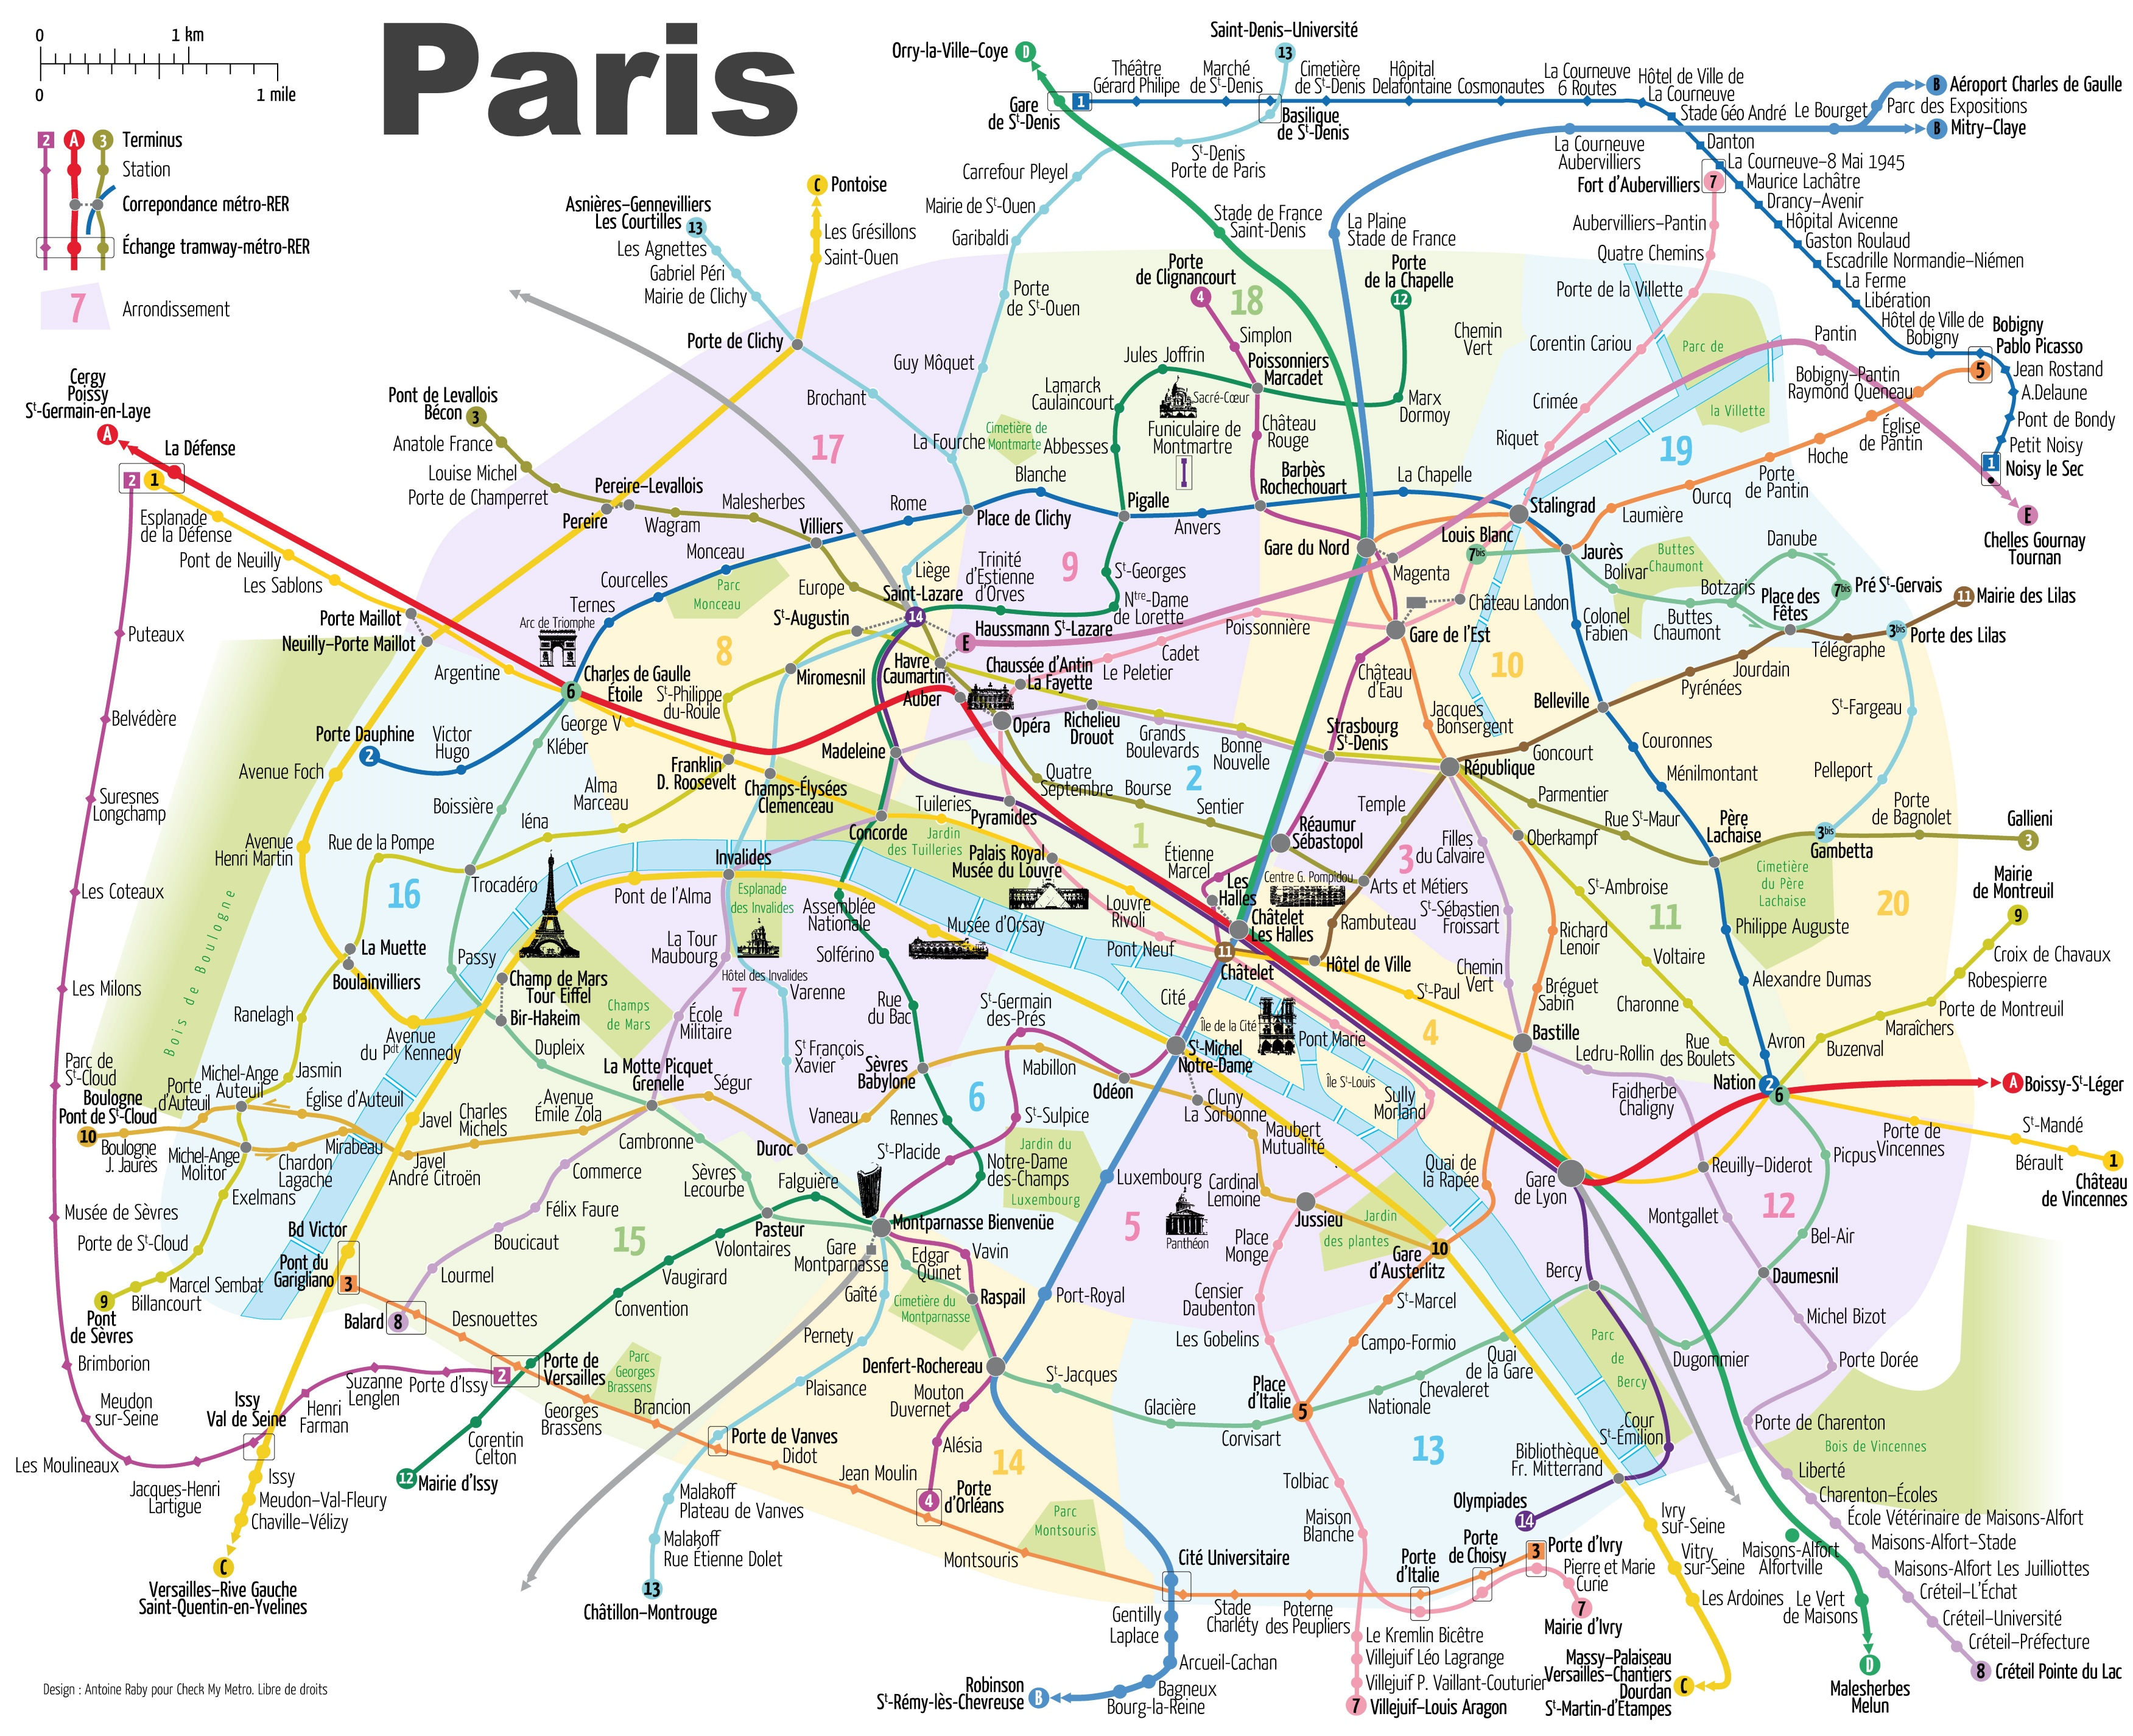 Paris Metro Map With Main Tourist Attractions - Printable Map Of Paris With Tourist Attractions